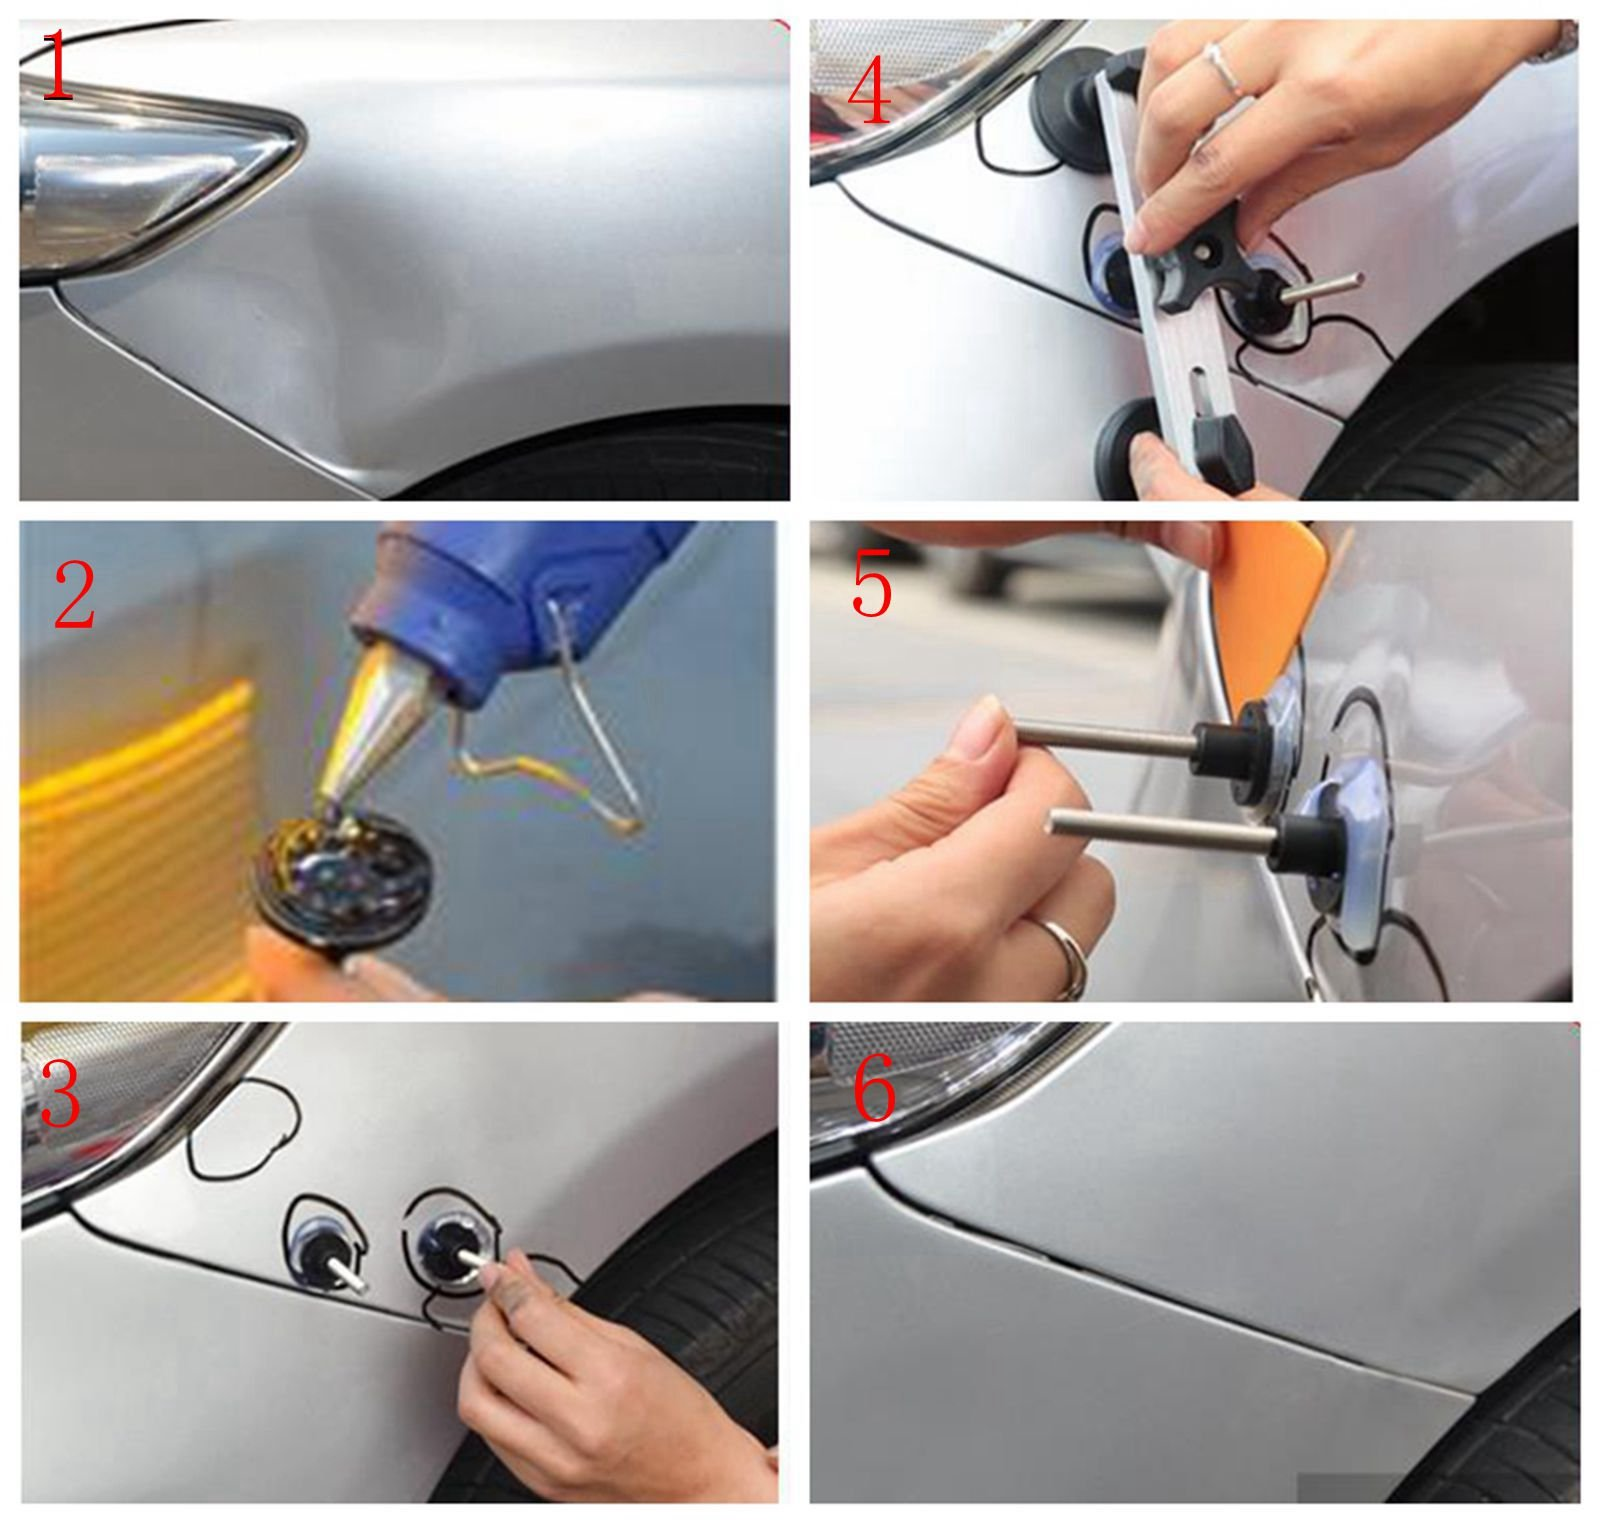 Super PDR 68pcs Auto Body Paintless Dent Removal Repair Tools Kits Dent Lifter Slide Hammer Pro Tabs Tap Down LED Reflector Board with Tool Bag by Super PDR (Image #7)